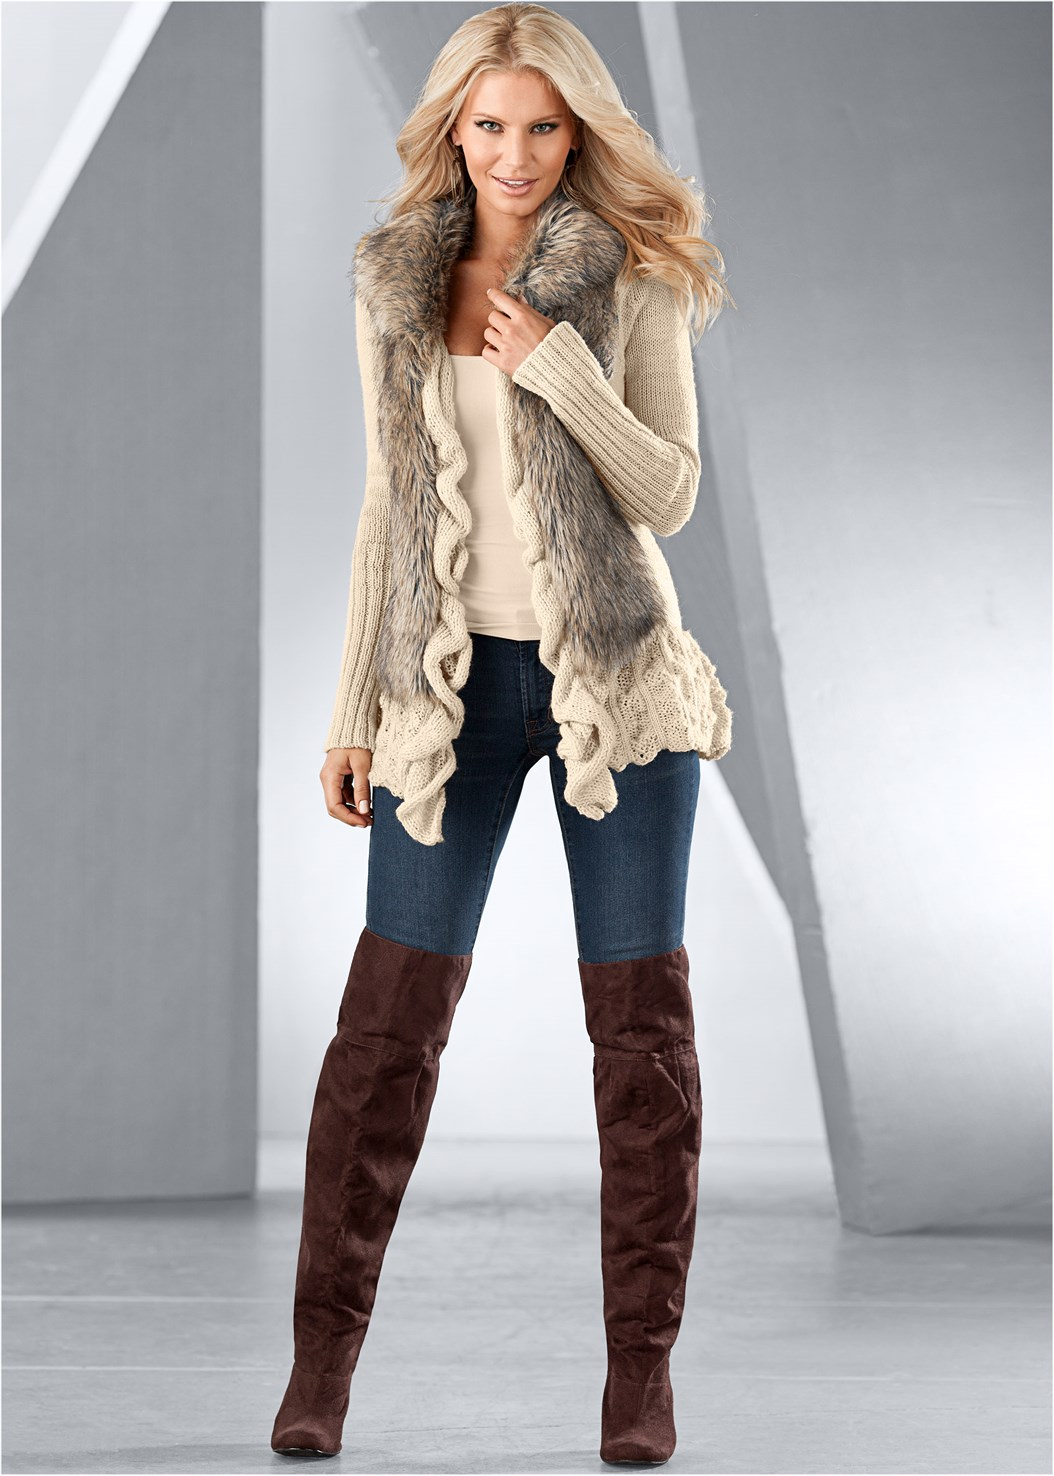 Faux Fur Ruffle Sweater,Mid Rise Color Skinny Jeans